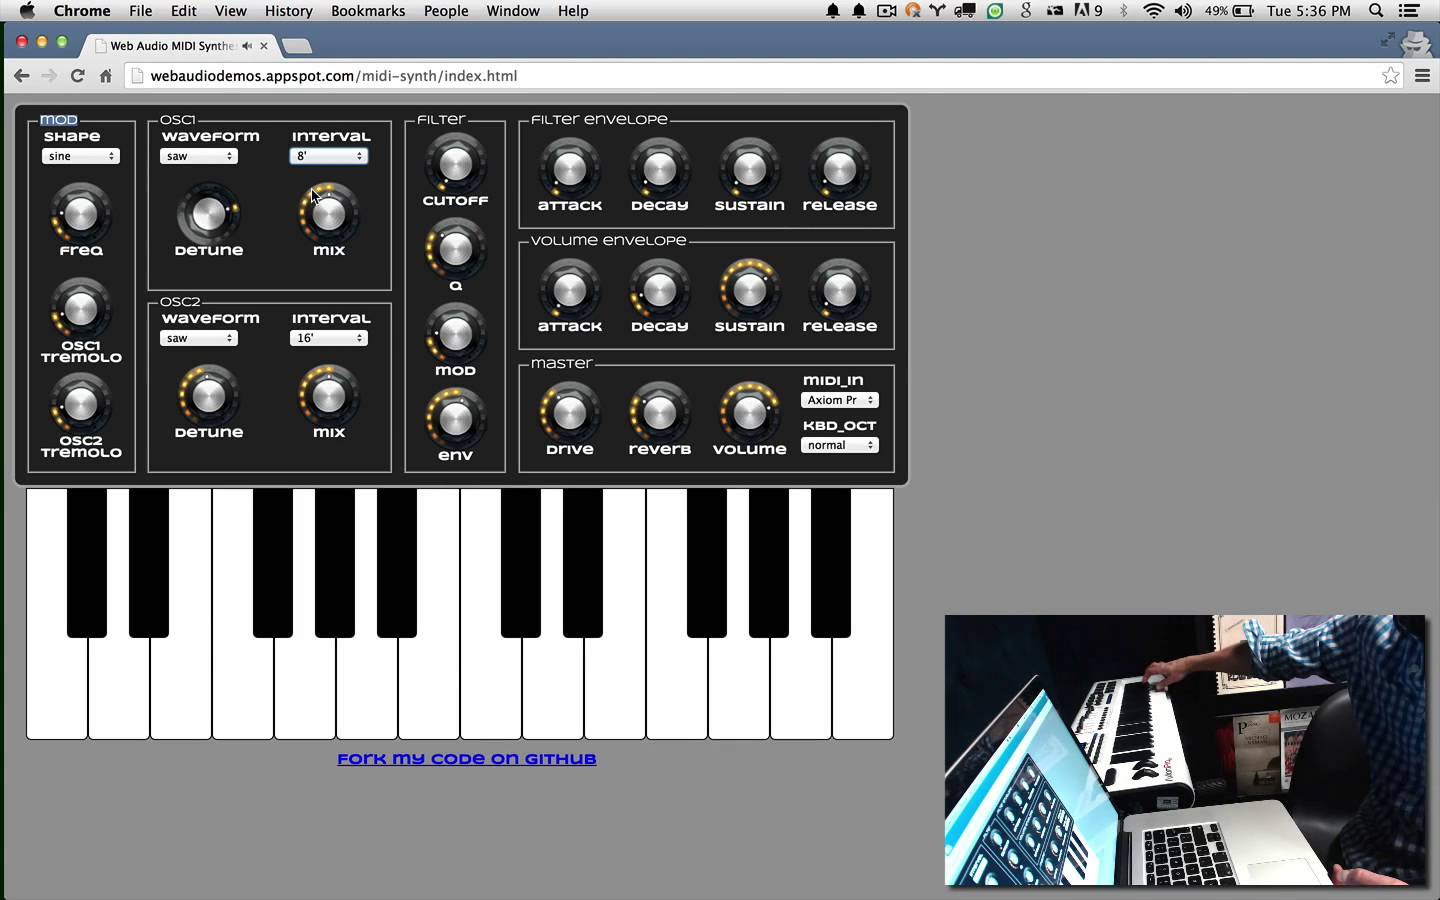 web-audio Archives - Page 2 of 3 - CDM Create Digital Music